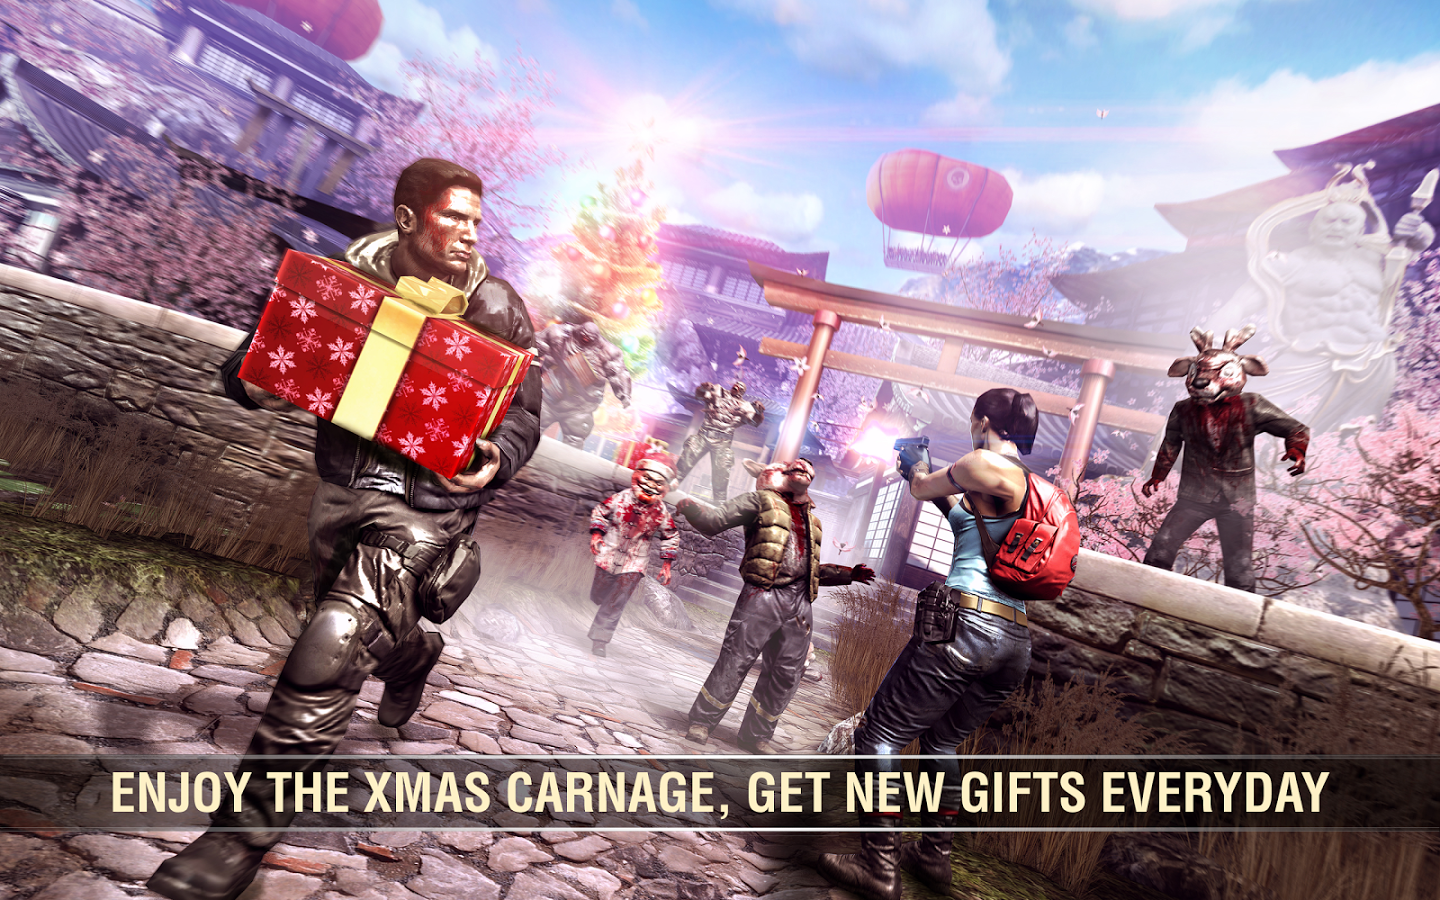 Dead Trigger 2 Apk Mod V0 9 0 Data Unlimited Ammo Free 4 Phones Official And Mod Apk F4p